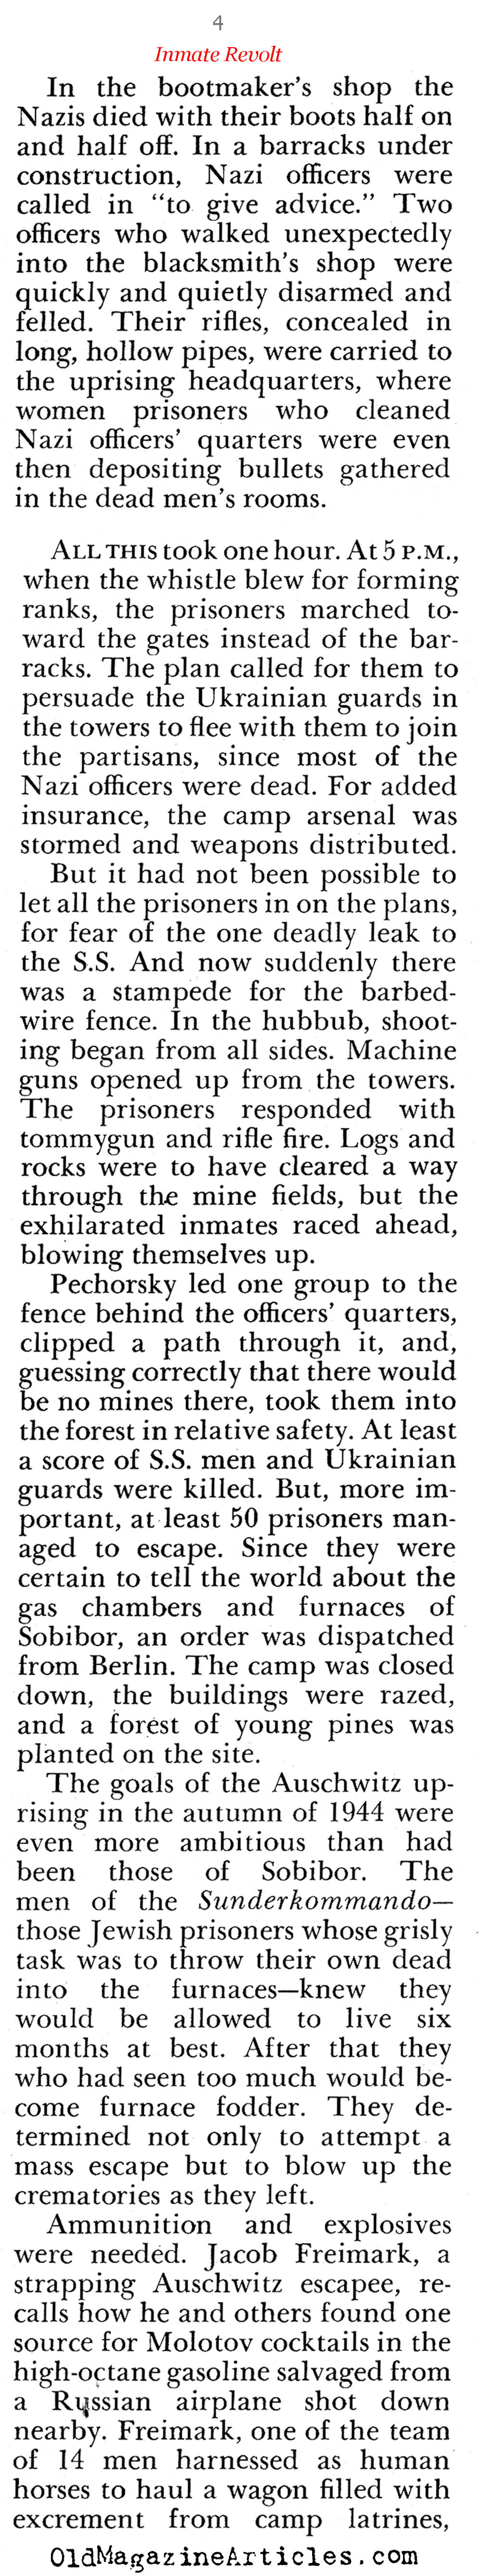 The Concentration Camp Revolts (Pageant Magazine, 1966)